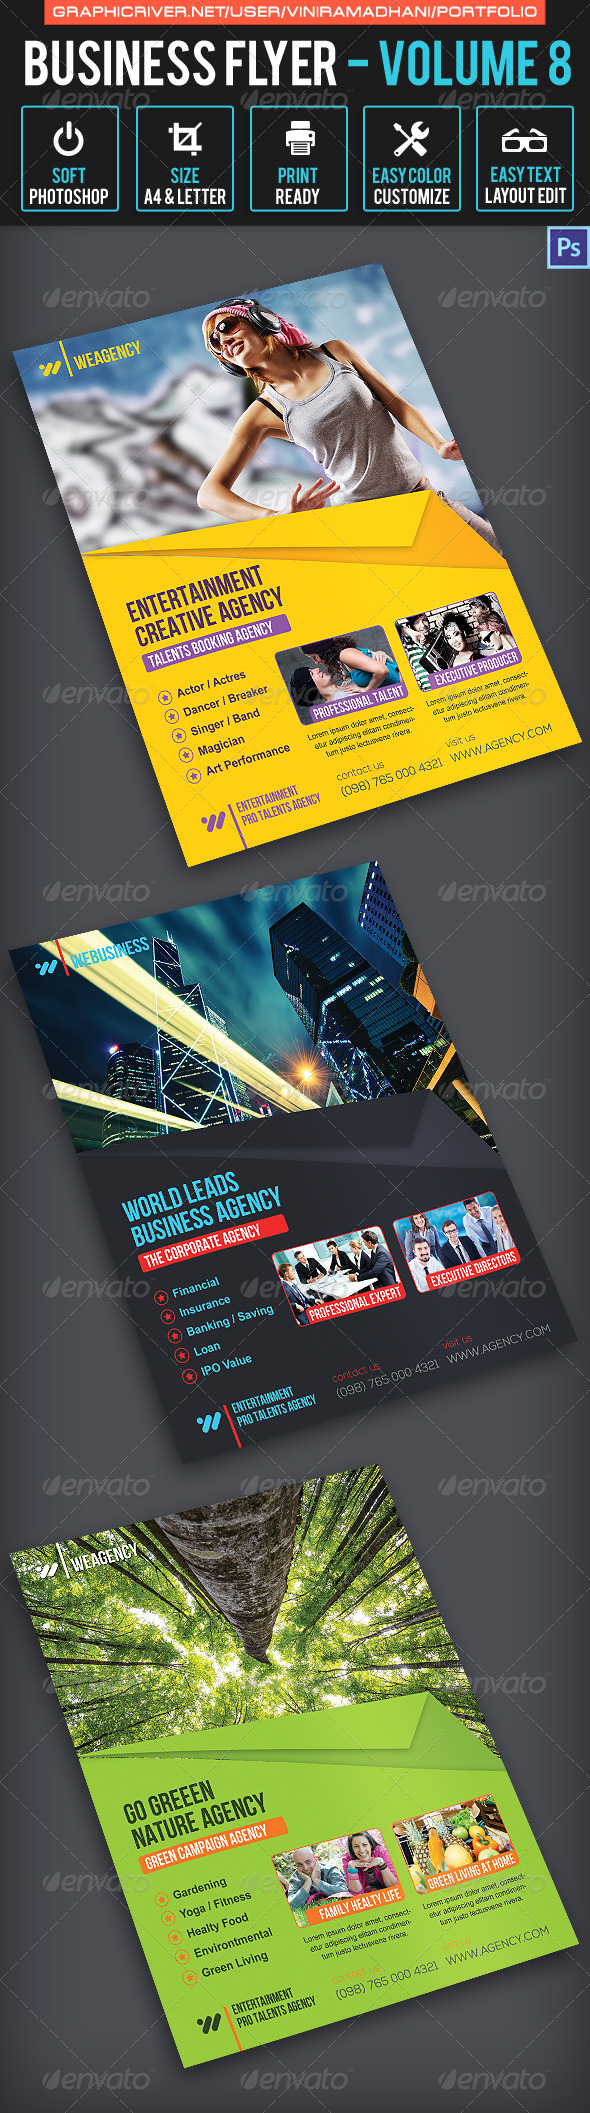 GraphicRiver Business Flyer Volume 8 6761656